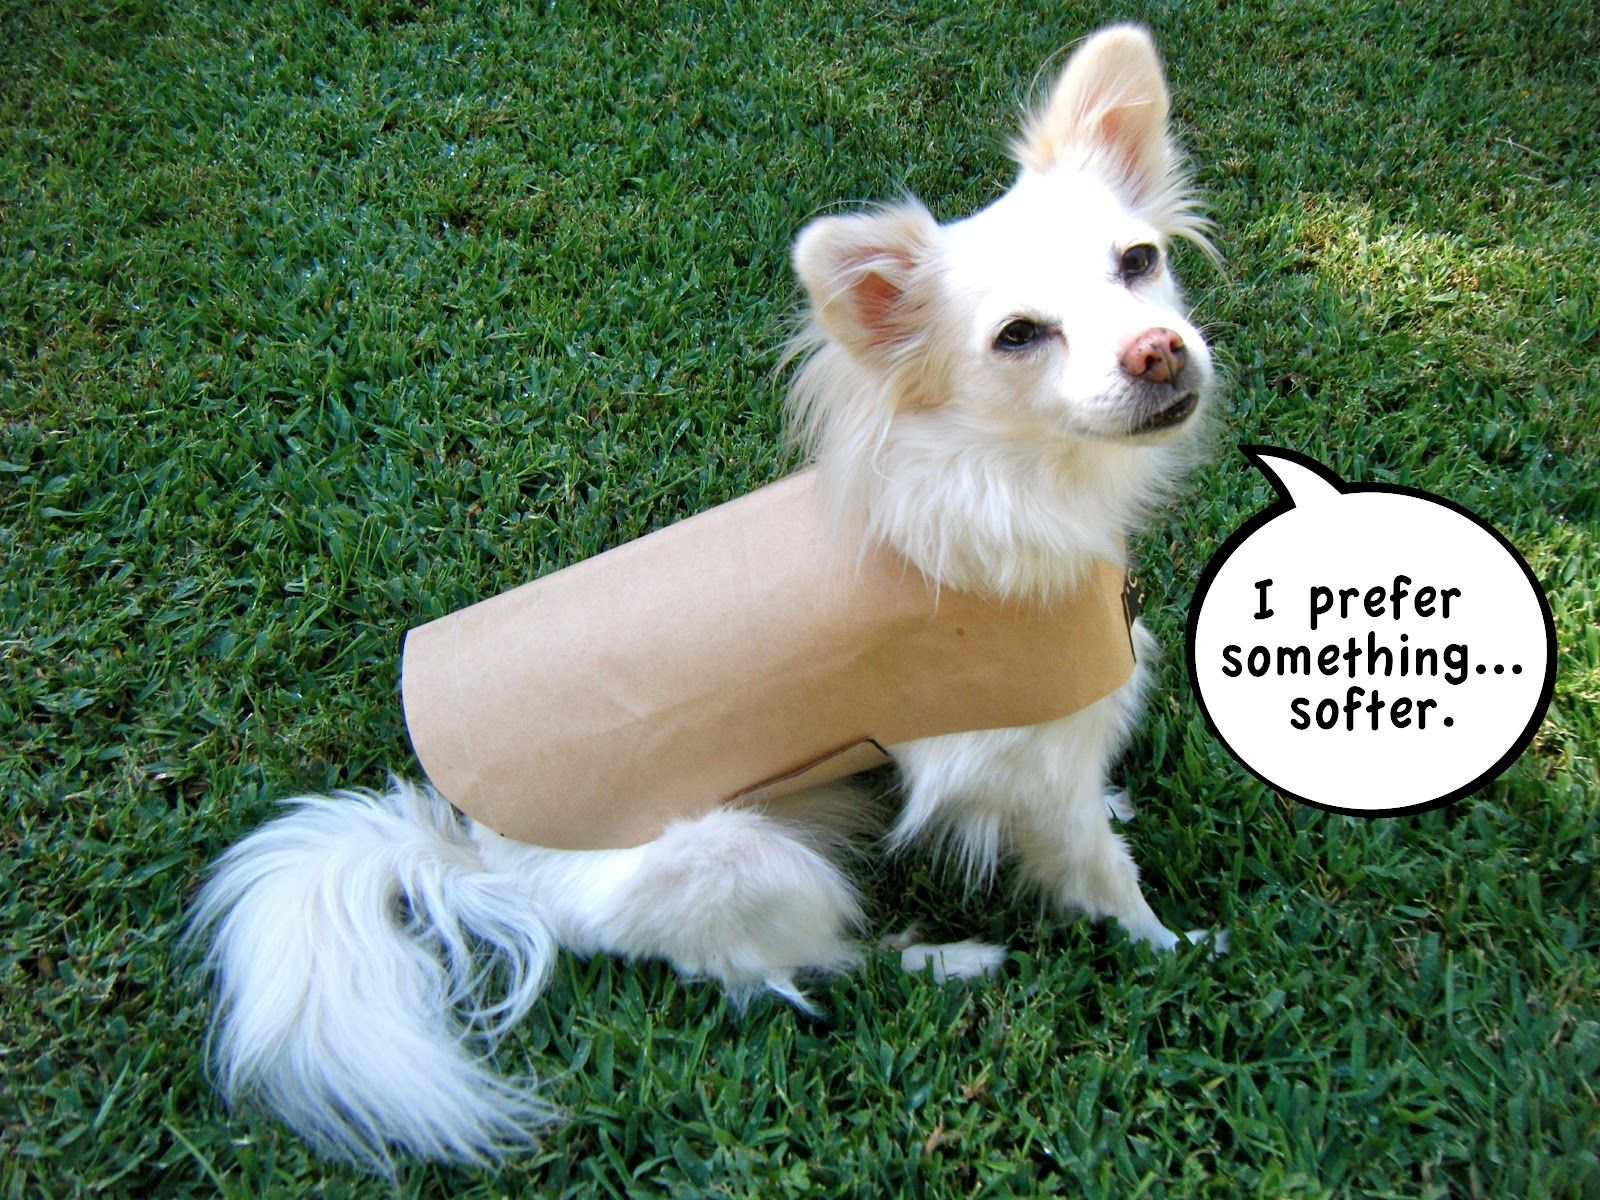 Sew DoggyStyle: DIY Pet Coat Pattern | For the pets! | Pinterest ...